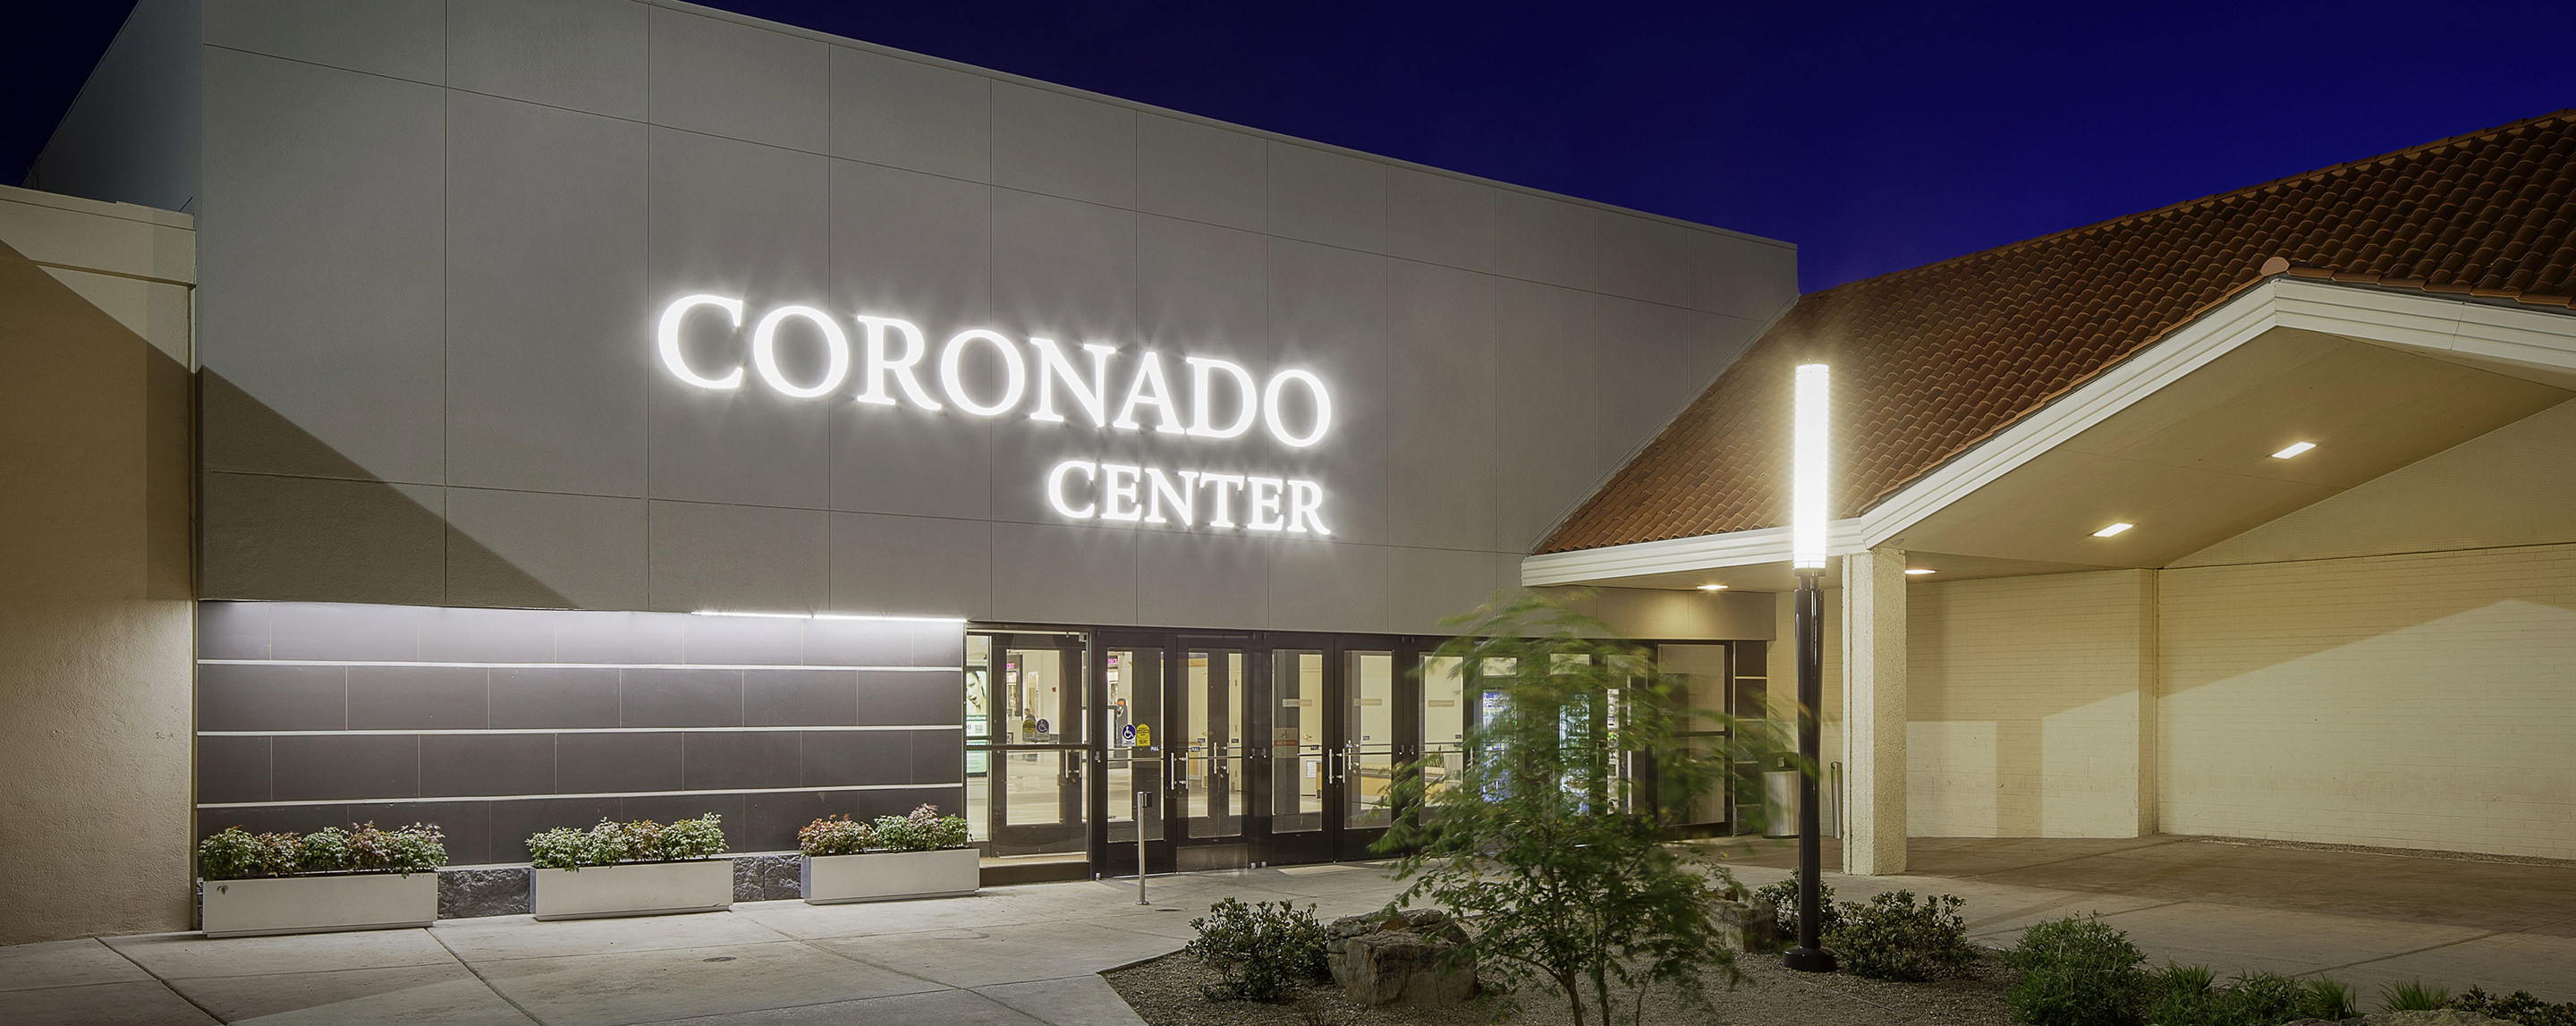 At night, the Coronado Center sign is illuminated at the property entrance decorated with plants and flowers.